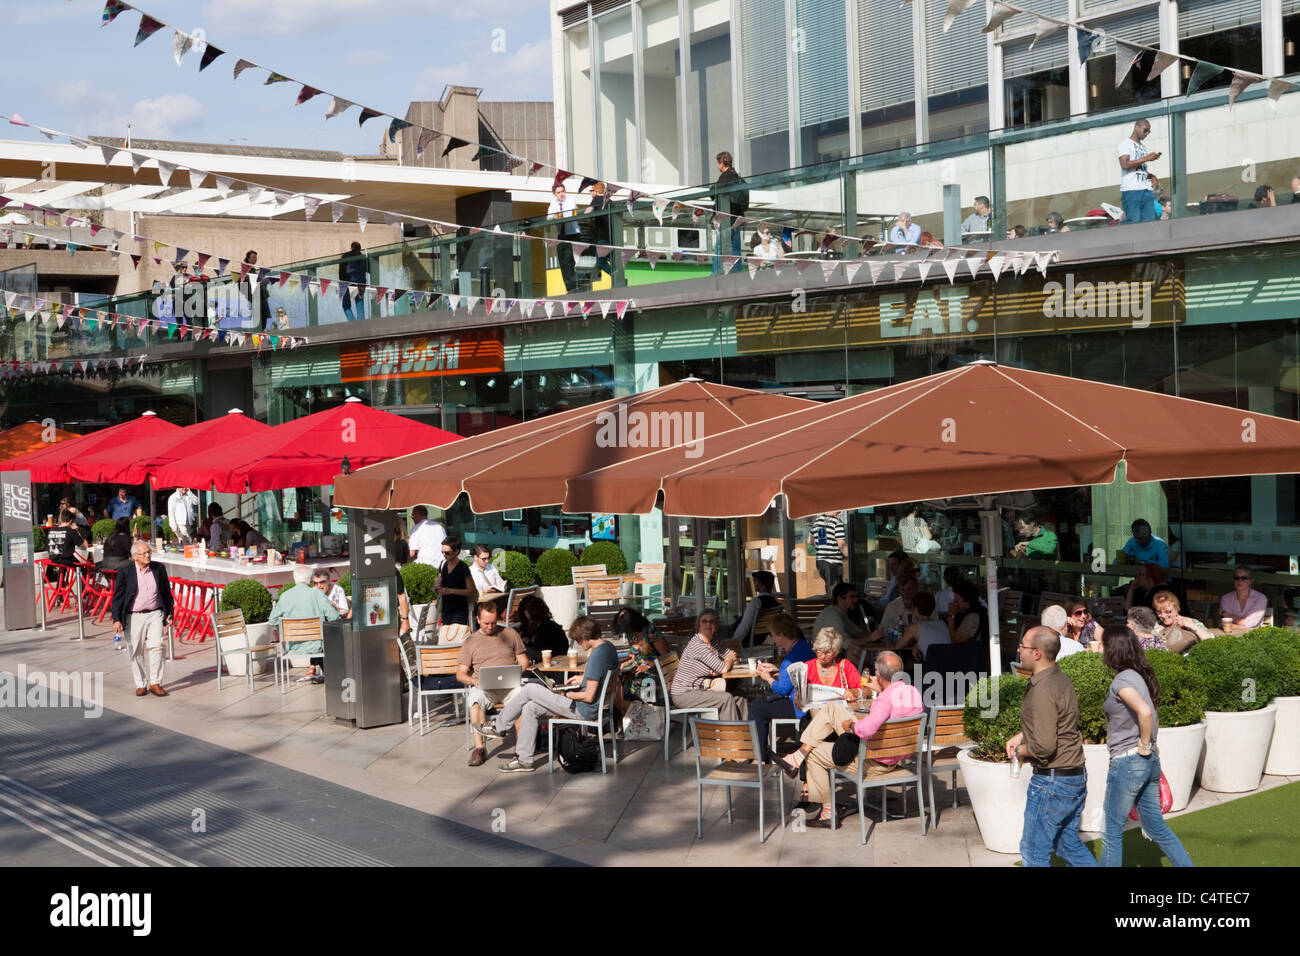 People enjoying the bars and restaurants by the Royal Festival Hall, South Bank, London, England, UK - Stock Image